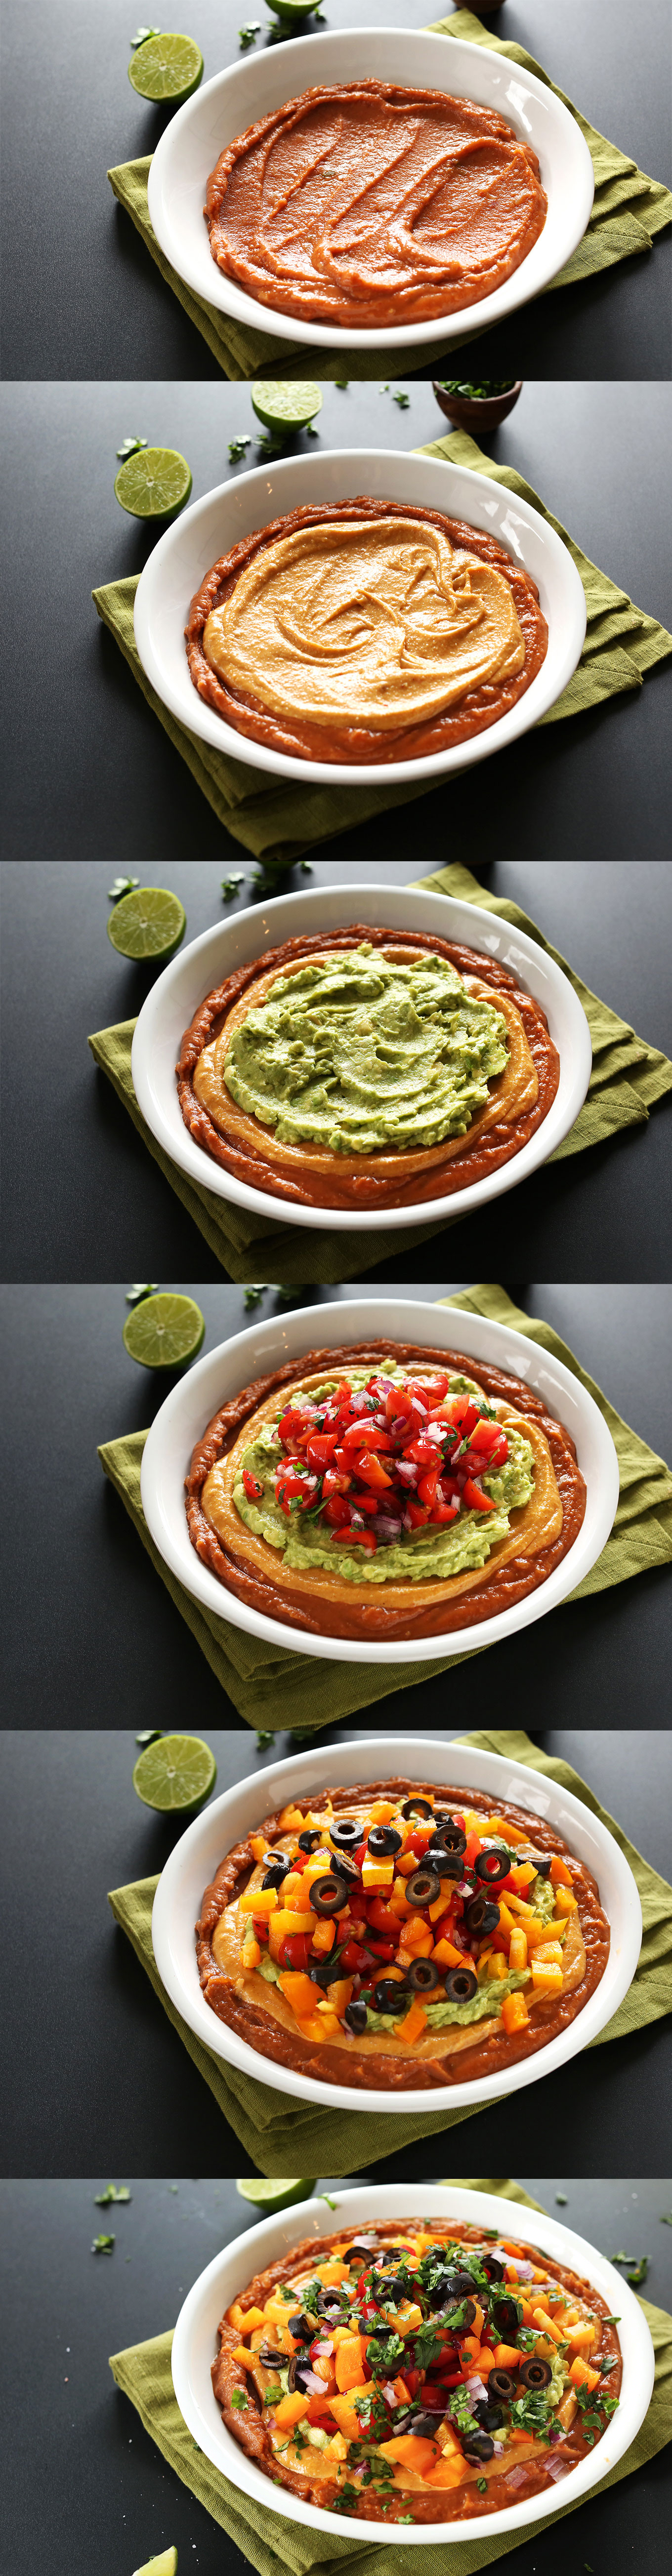 Series of photos showing each of the layers in our 7-Layer Vegan Mexican Dip recipe